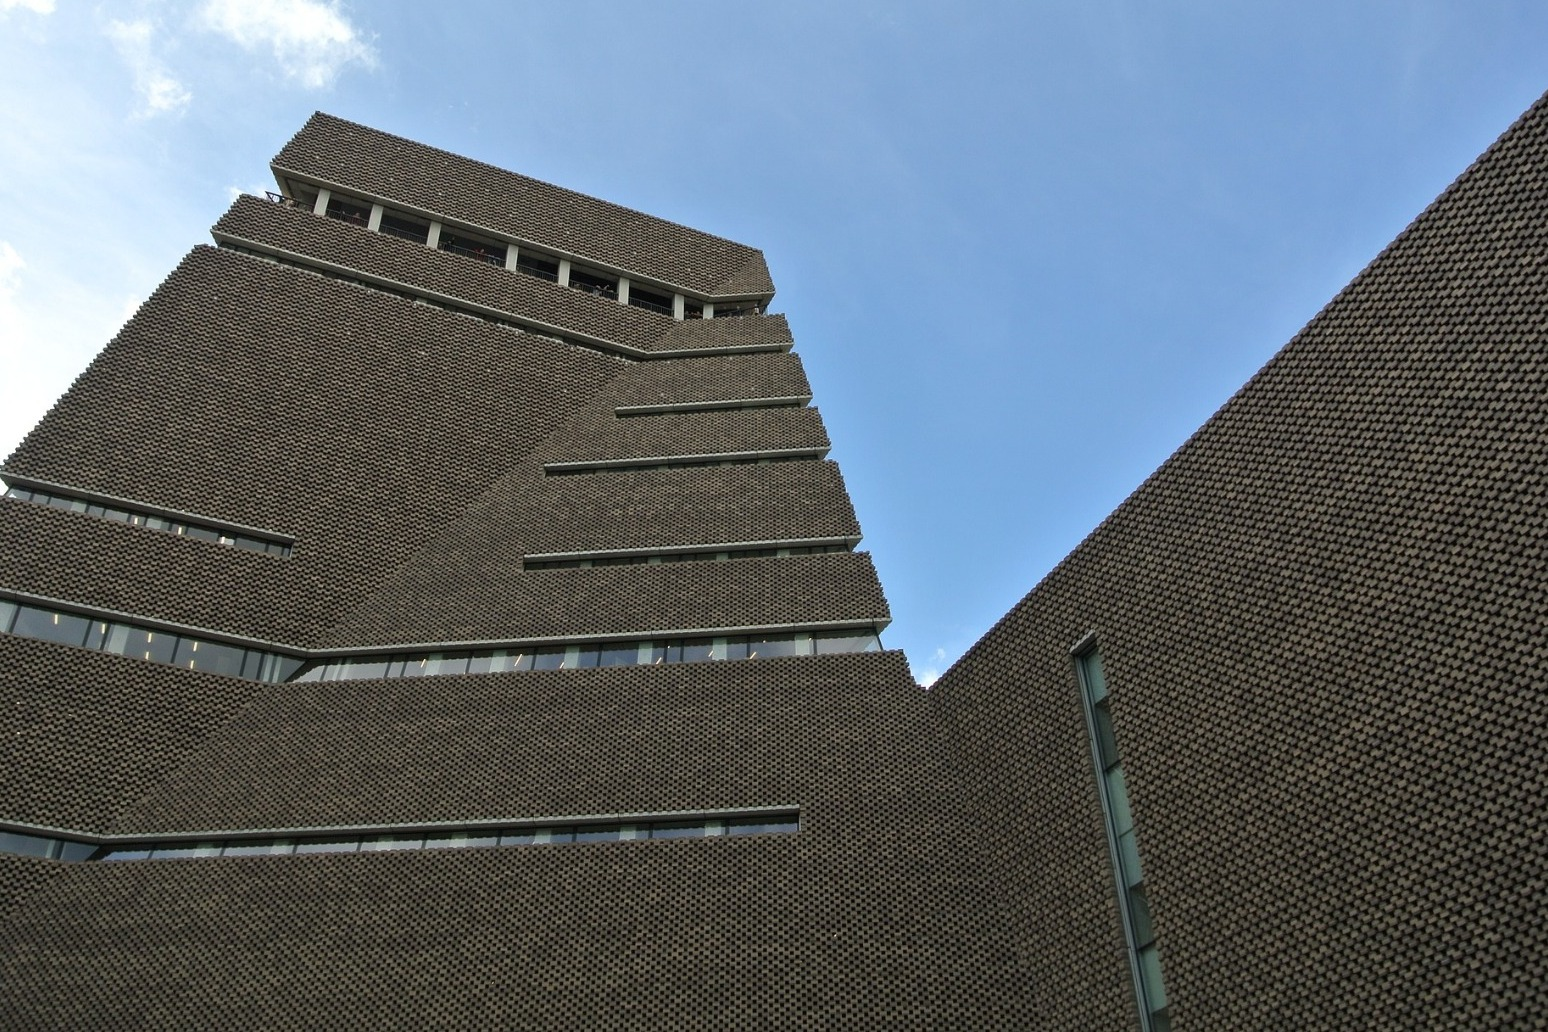 Teenager remanded in custody over Tate Modern incident.